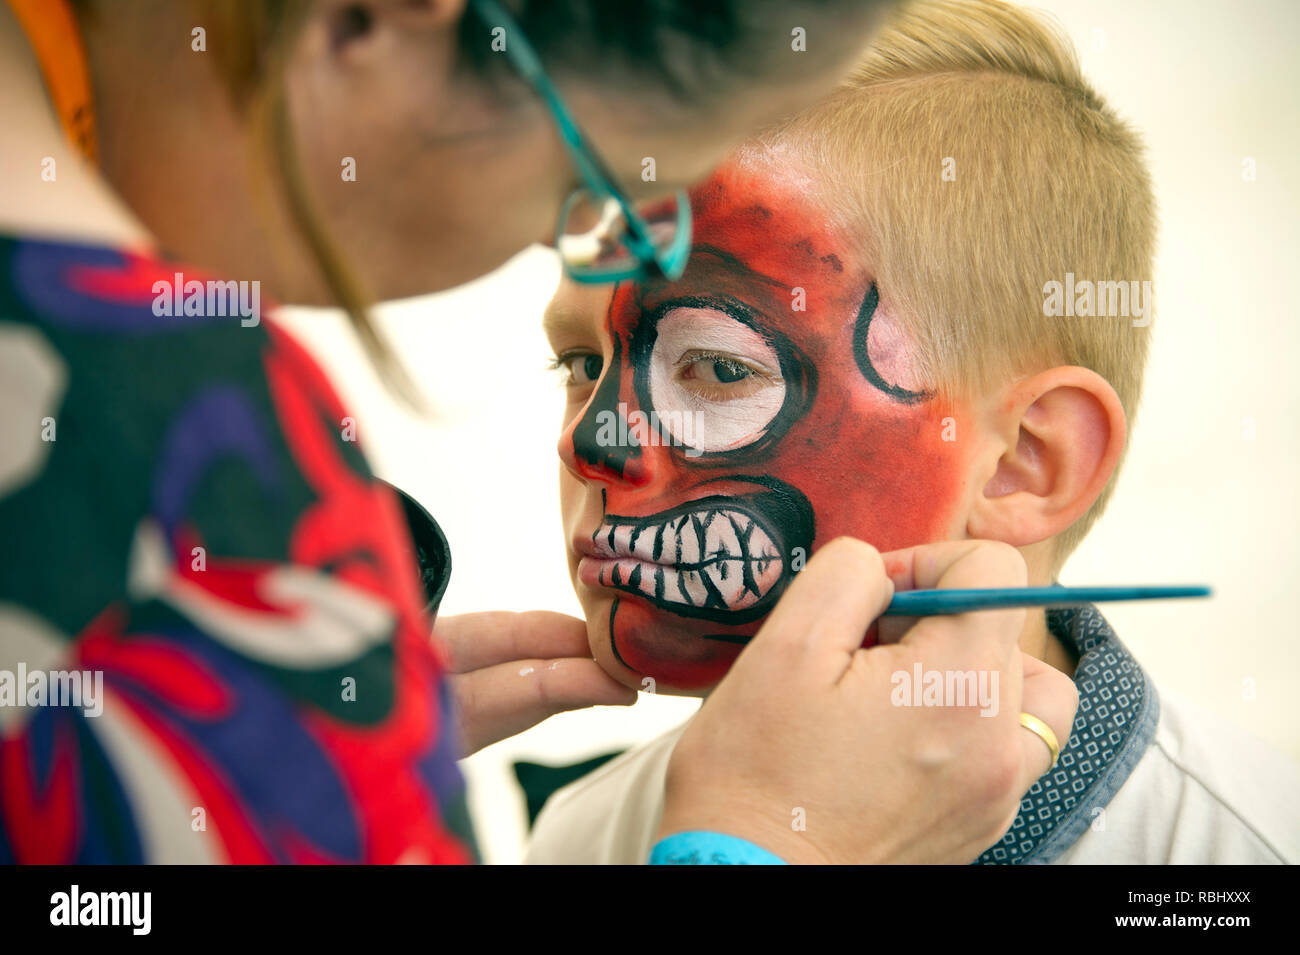 Children having their faces painted - Stock Image